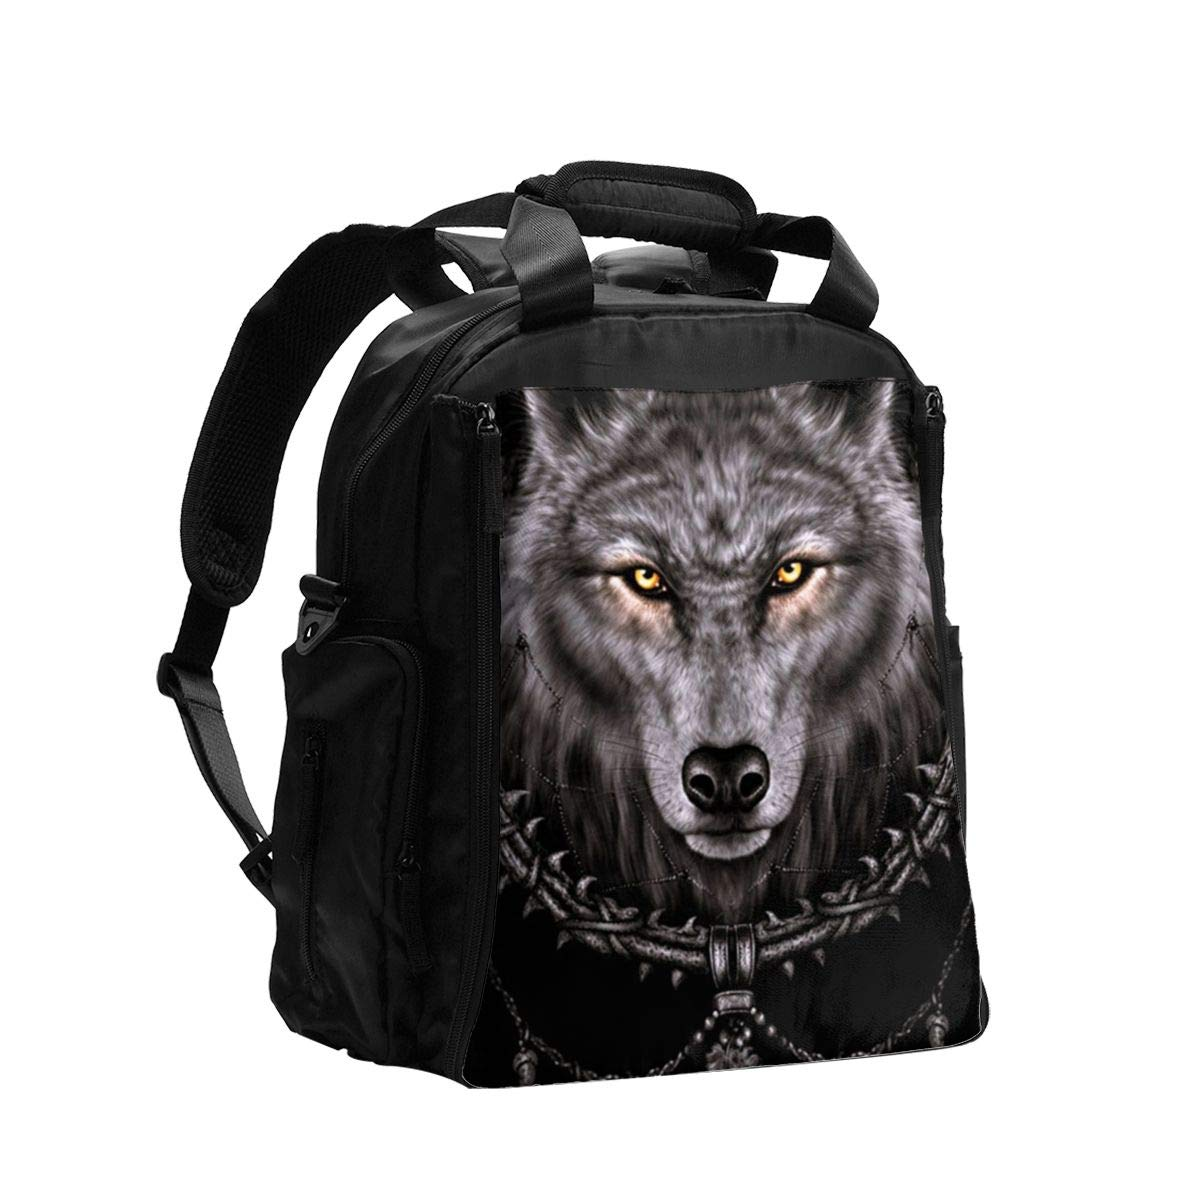 Native Wolf Spirit Diaper Bag Backpack Travel Backpack Maternity Baby Changing Bags